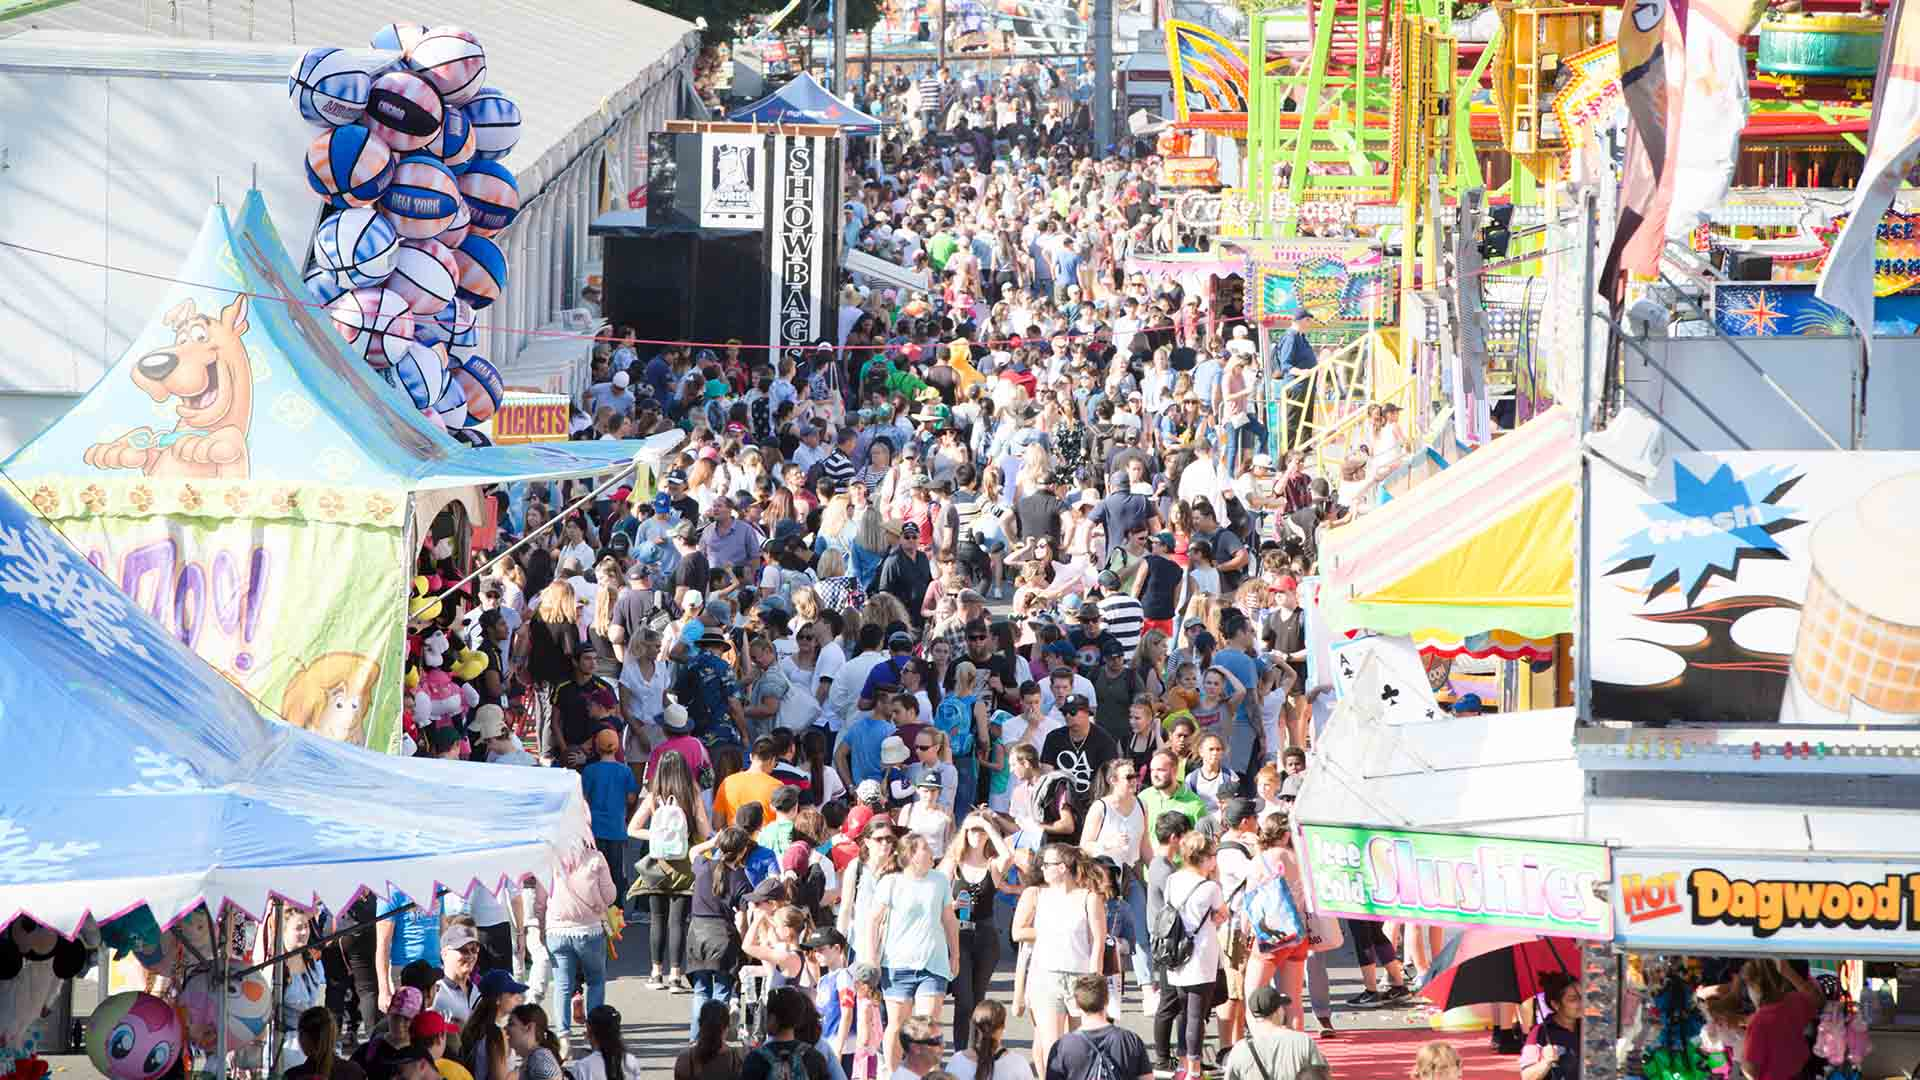 This Year's Ekka Public Holiday Is Moving to a Friday So Brisbanites Can Enjoy a Bonus Long Weekend